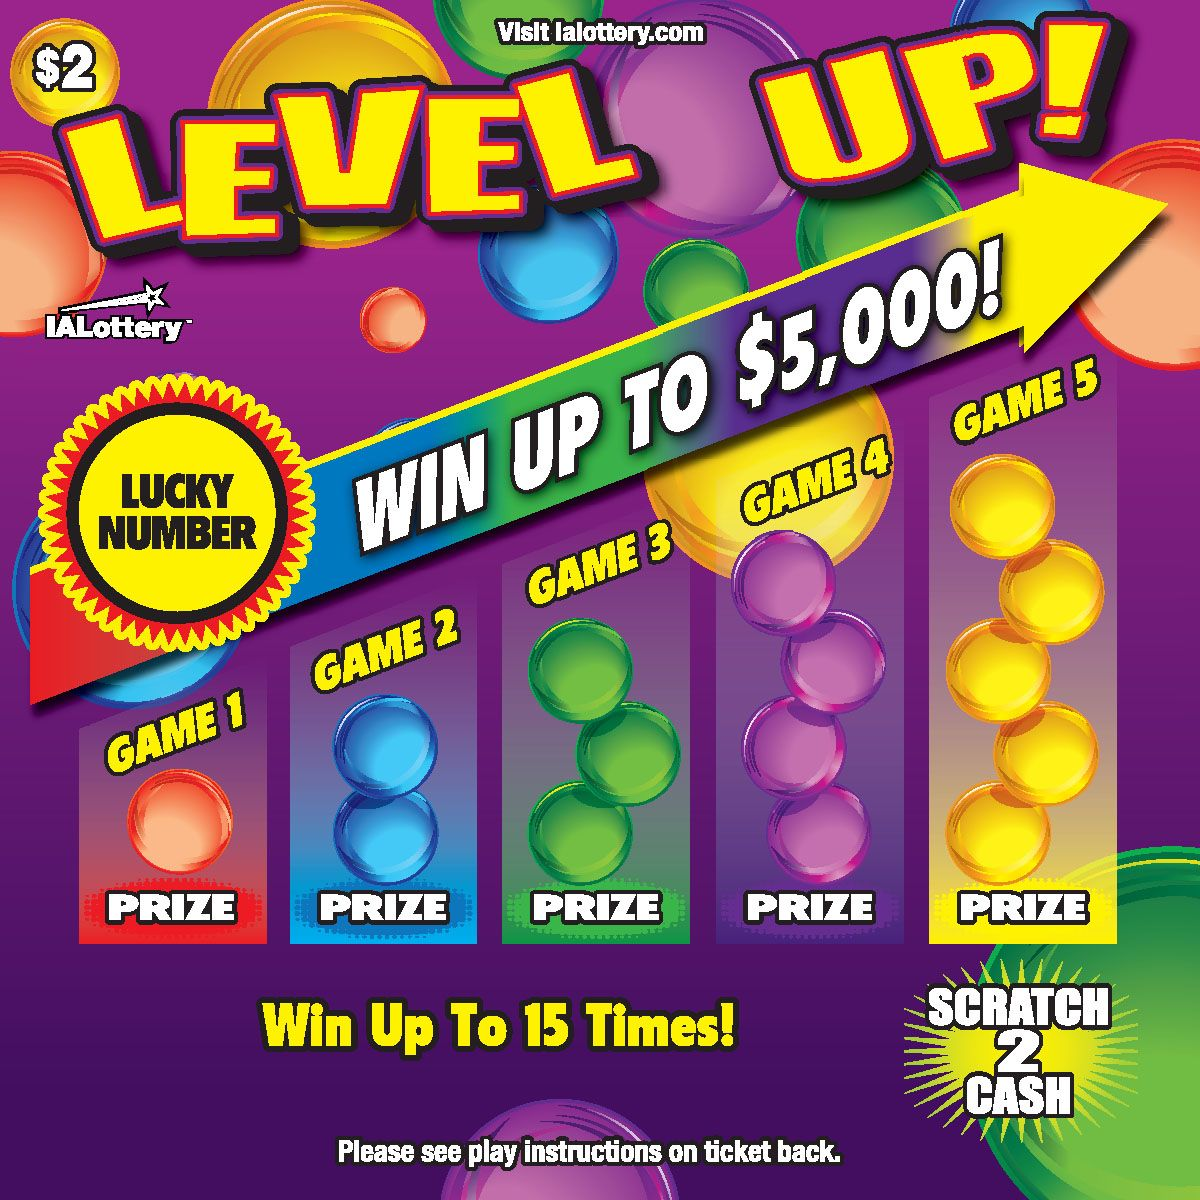 Pin on New Lottery Games!